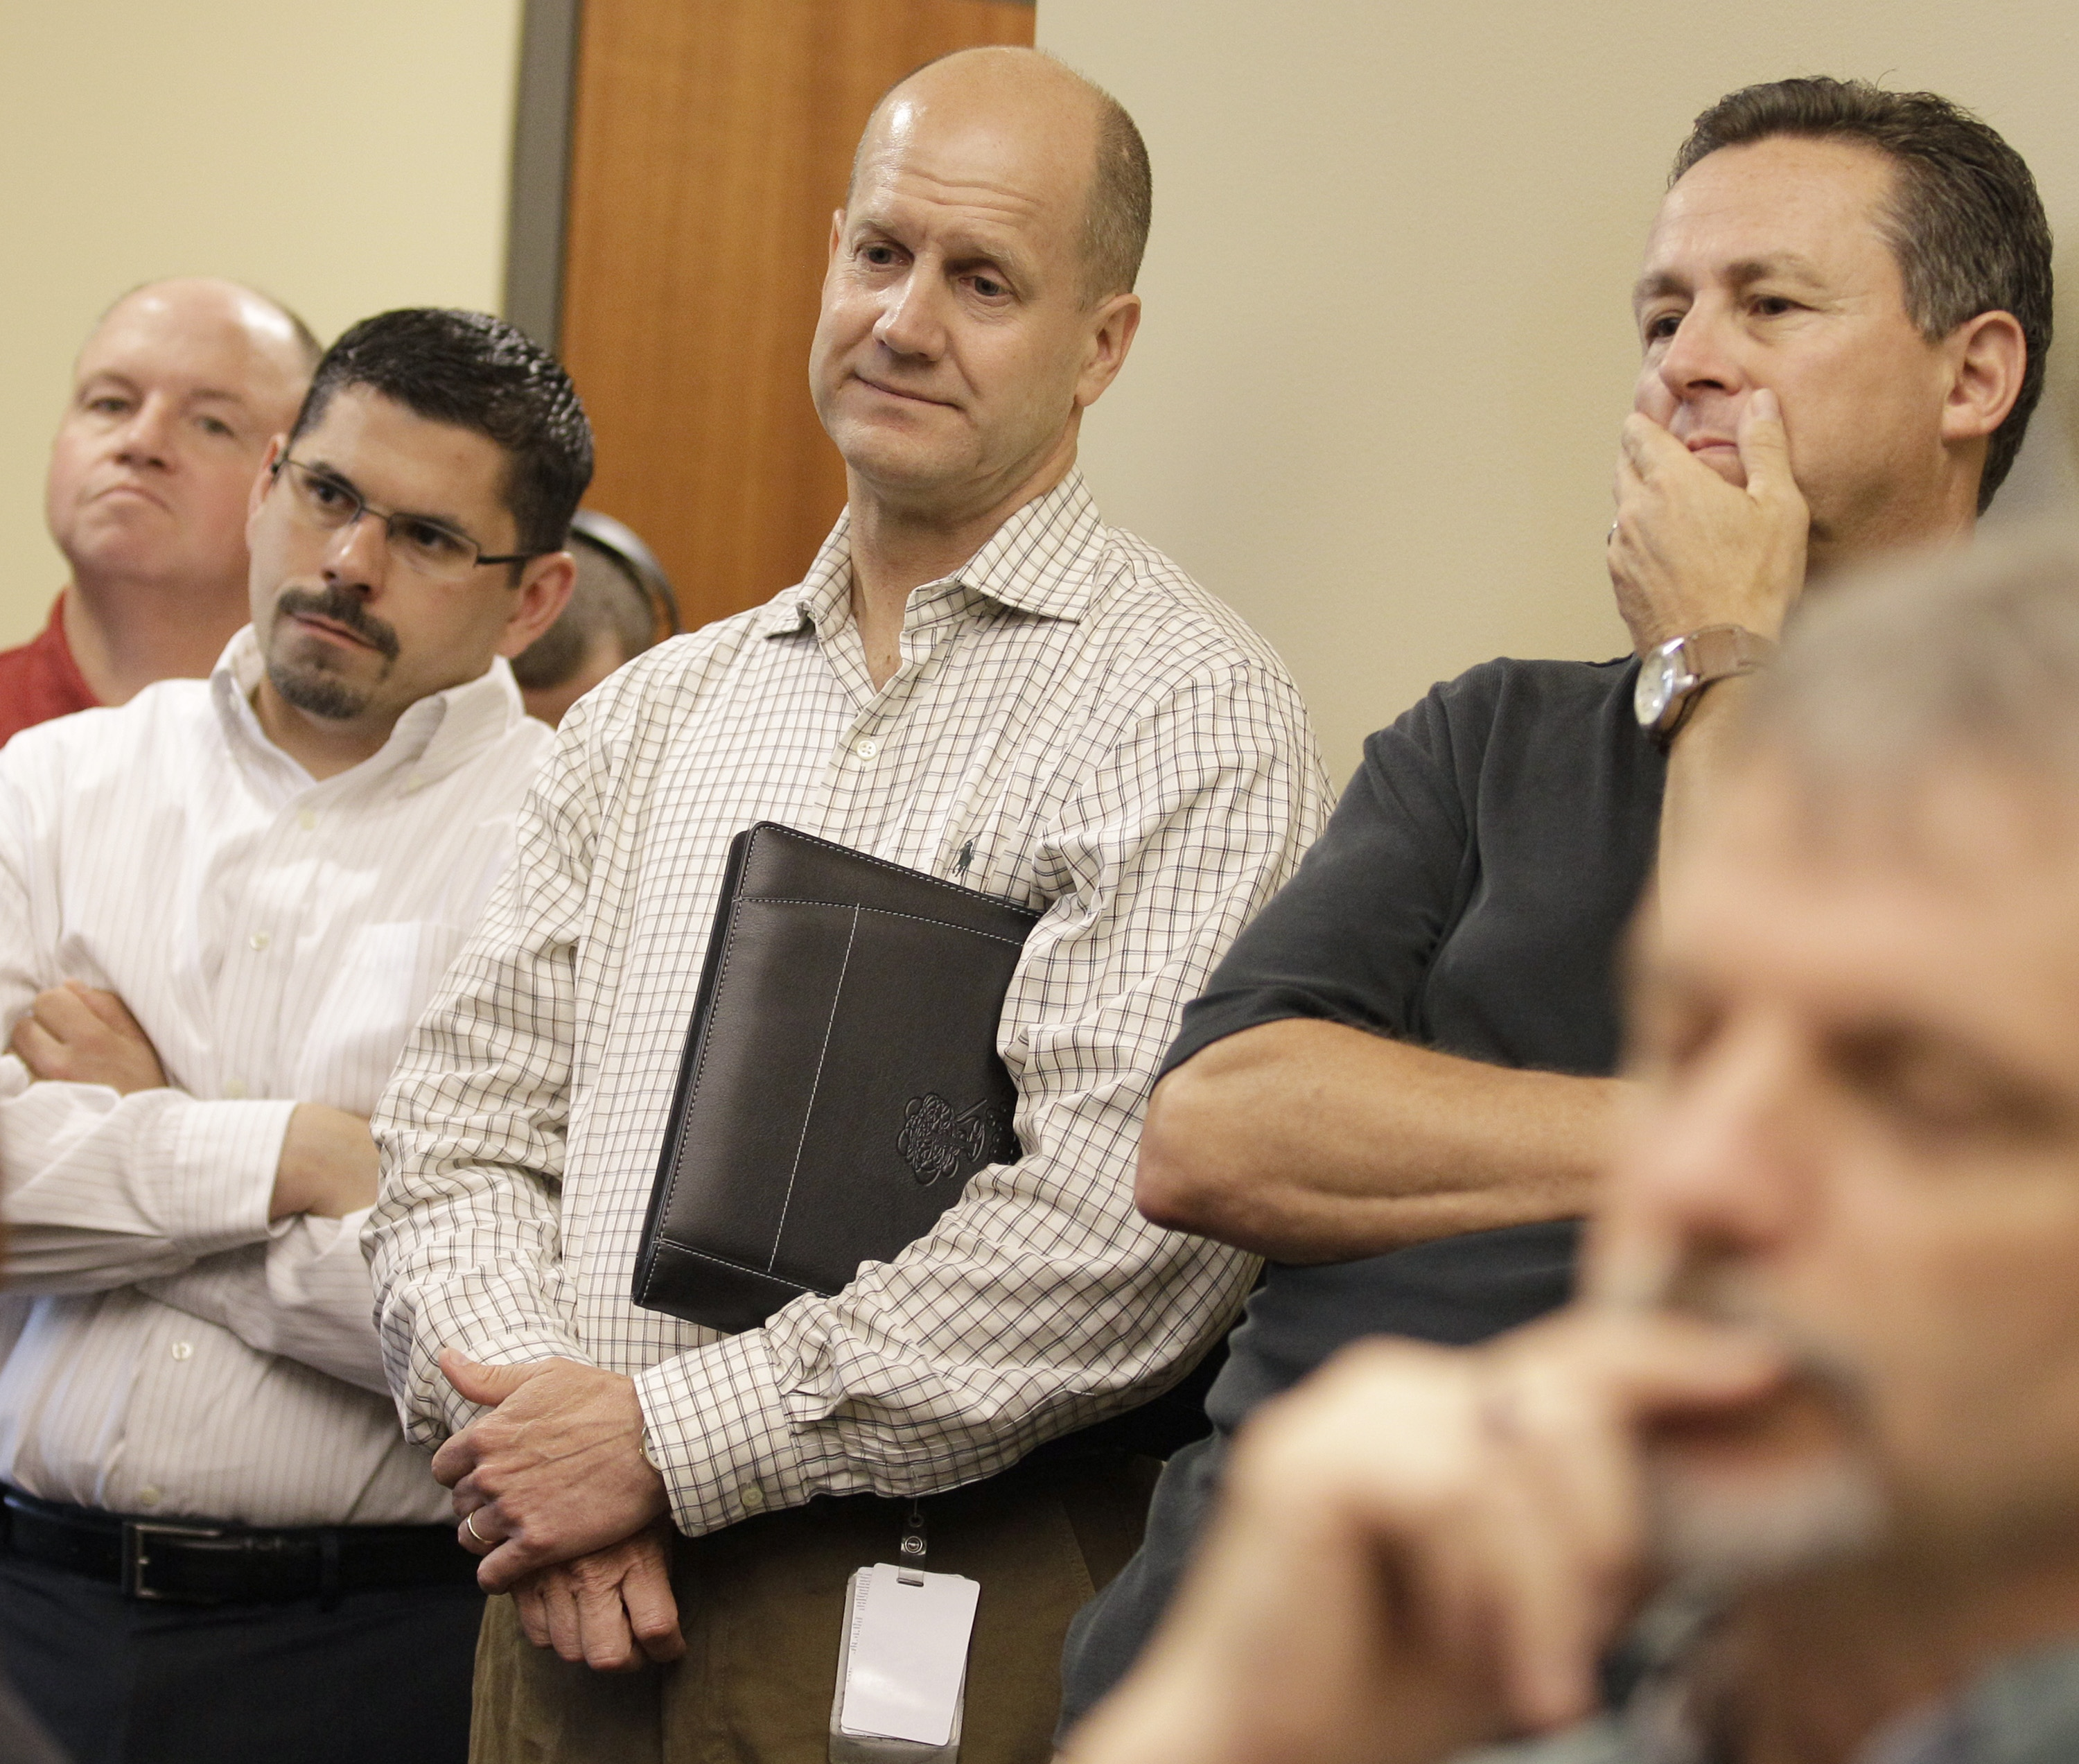 FILE - In this July 9, 2010, file photo, President of the Cleveland Cavaliers and Quicken Loans Arena Len Komorowski, center, listens in as team general manager Chris Grant and head coach Byron Scott speak to the media in Independence, Ohio. On the sports